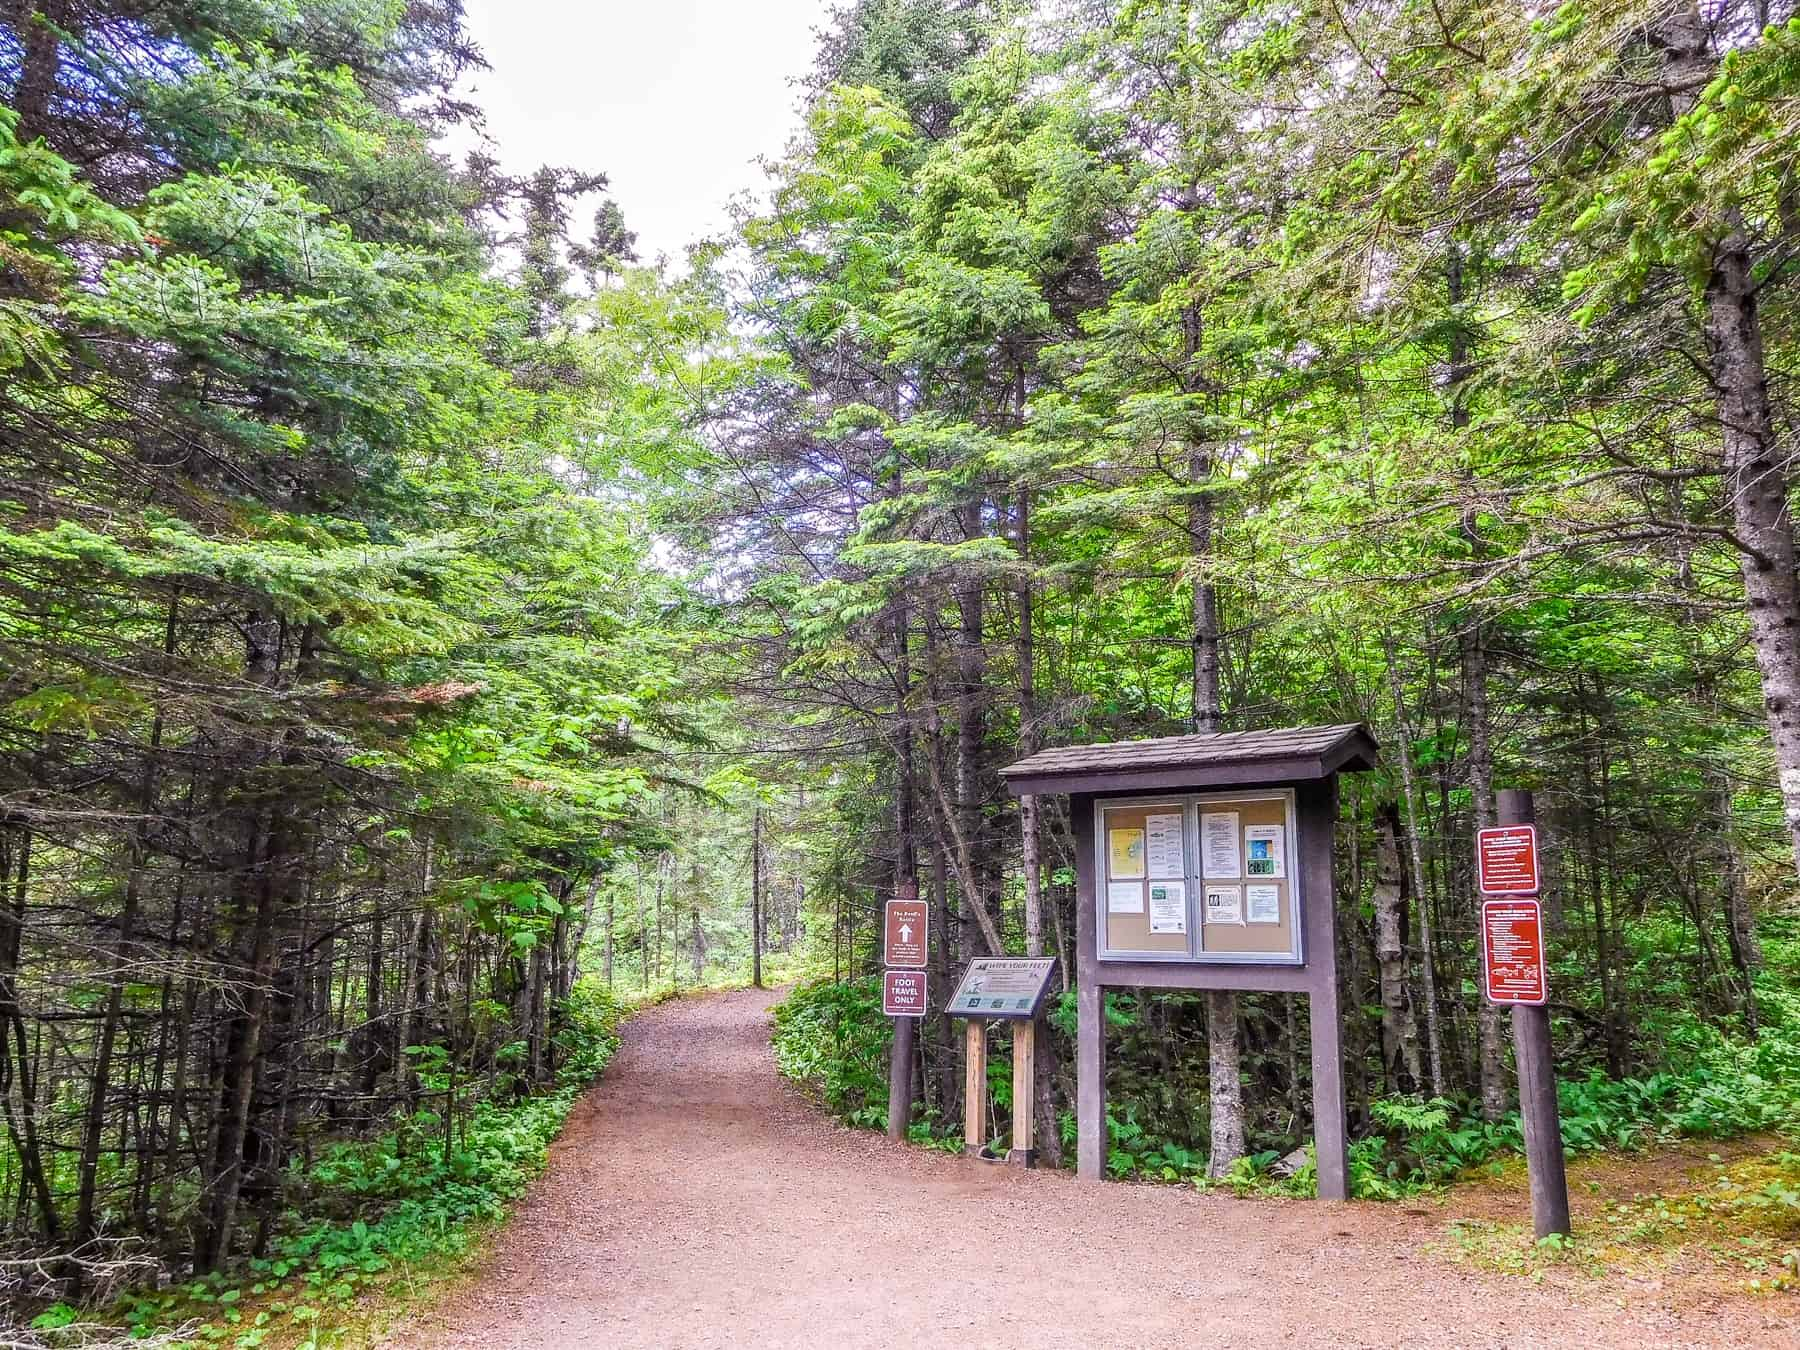 Judge CR Magney has several miles of hiking trails